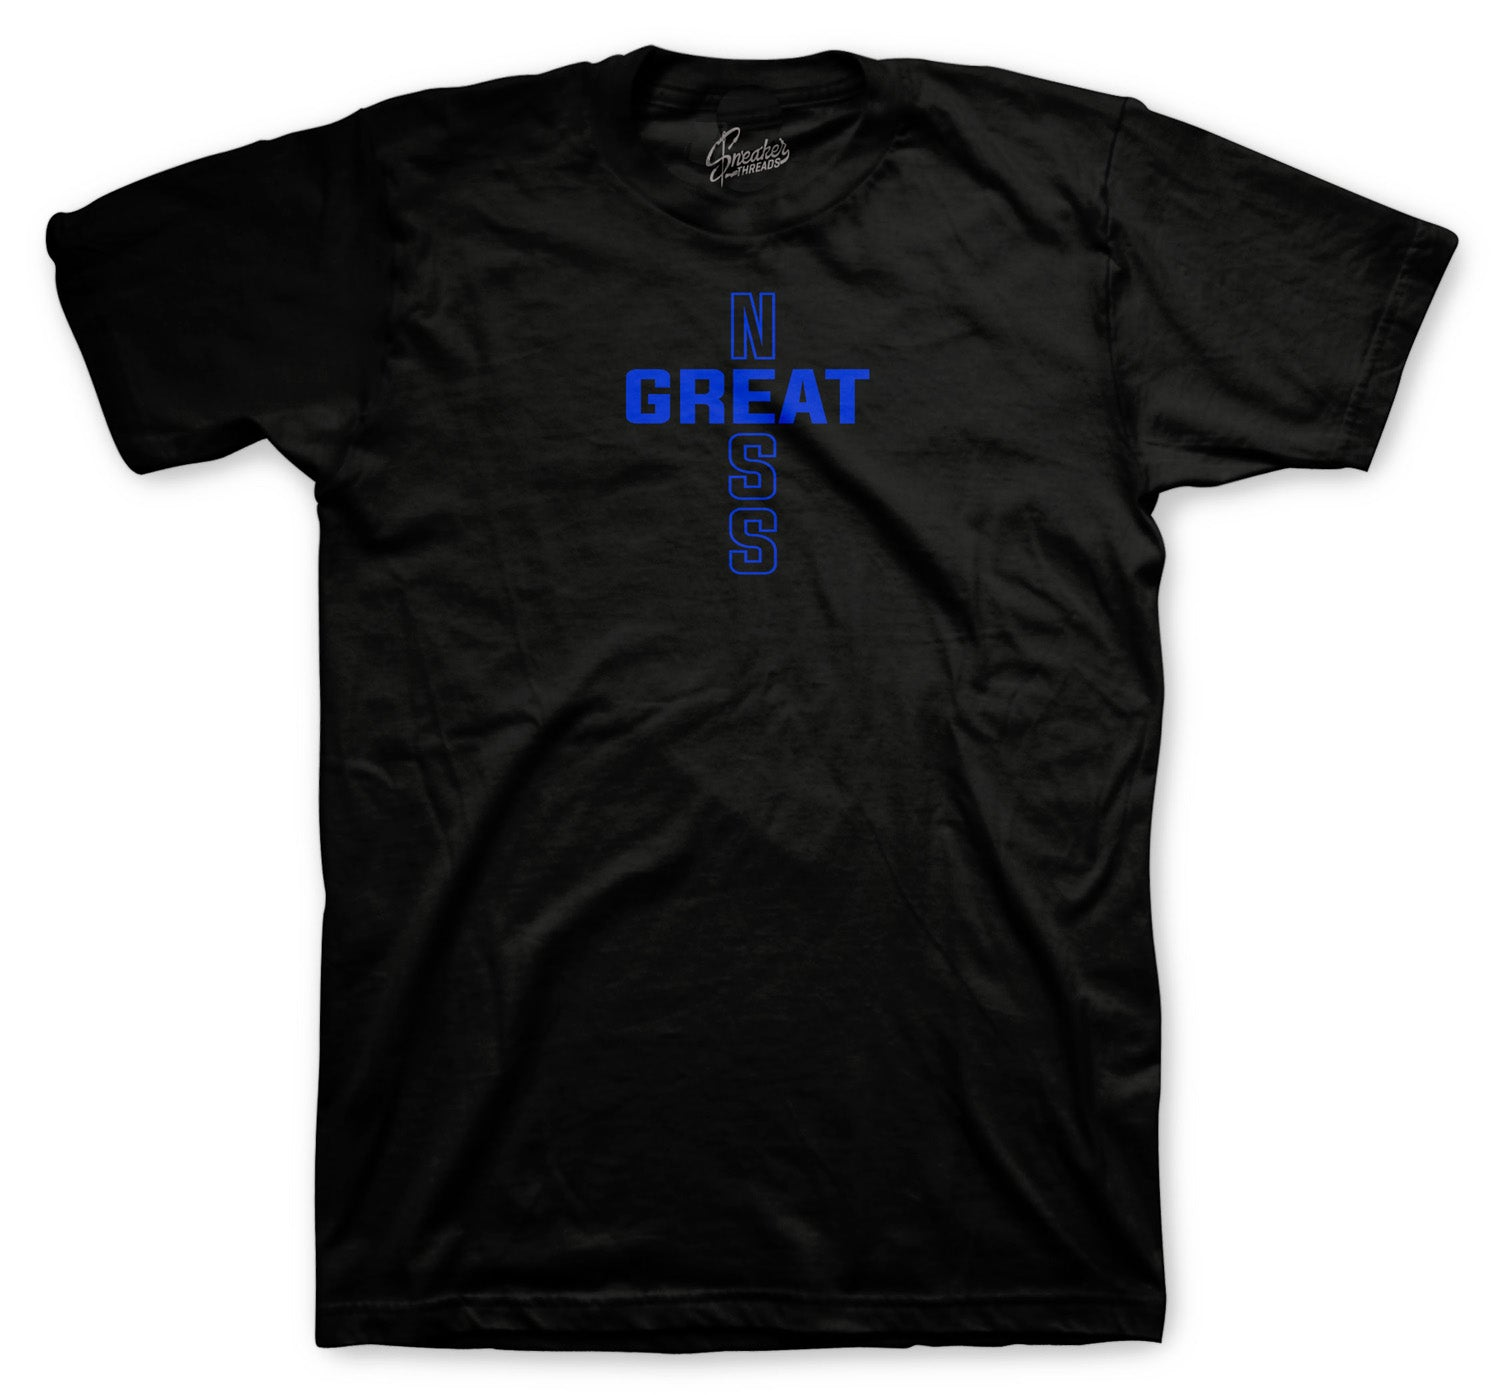 Jordan 12 game royal sneakers have matching Jordan sneaker shirt